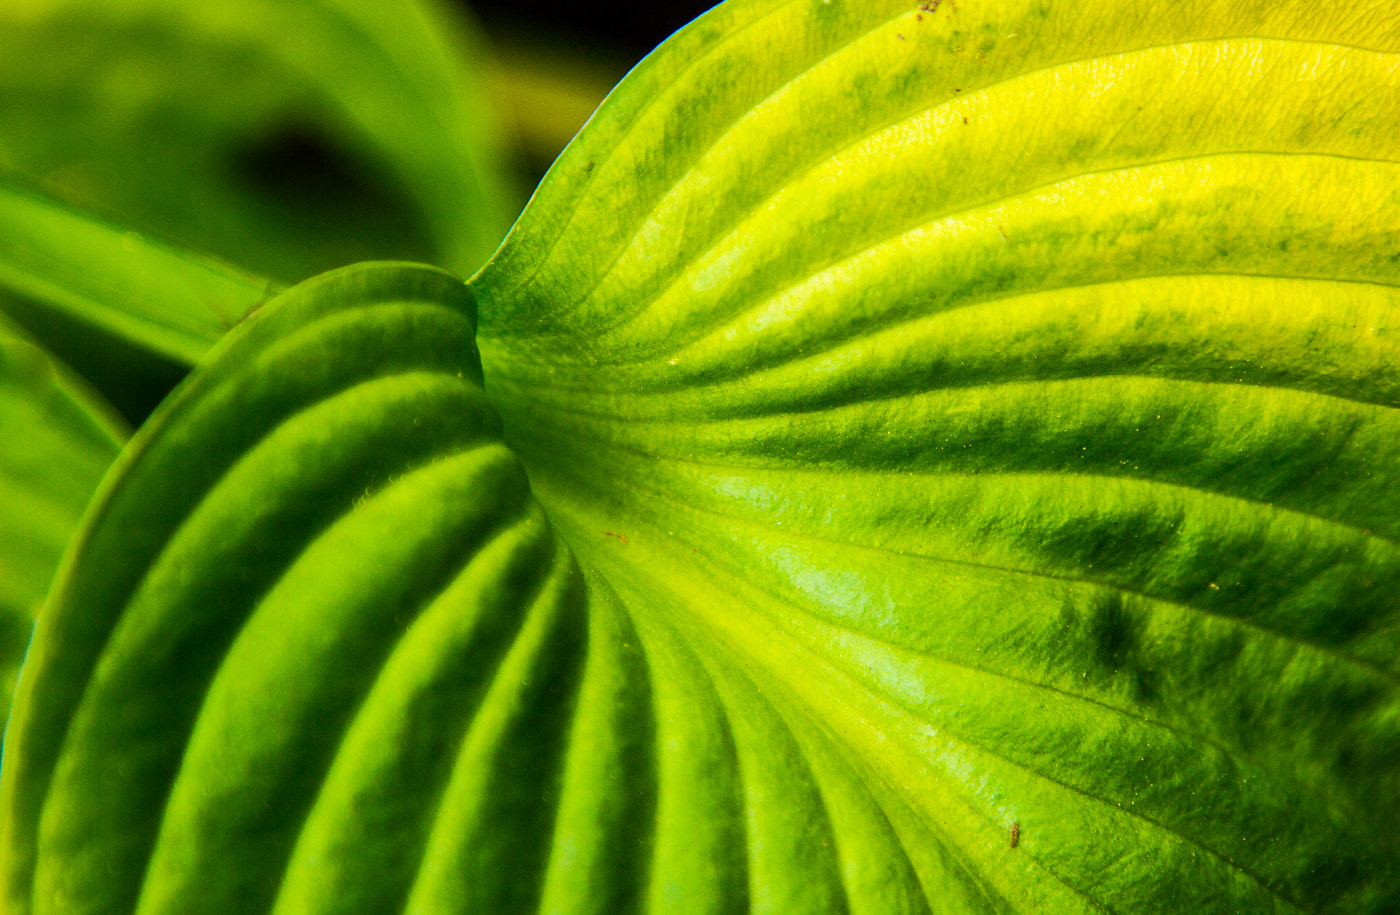 Photograph Waves of Green by Jeff Price-Jones on 500px